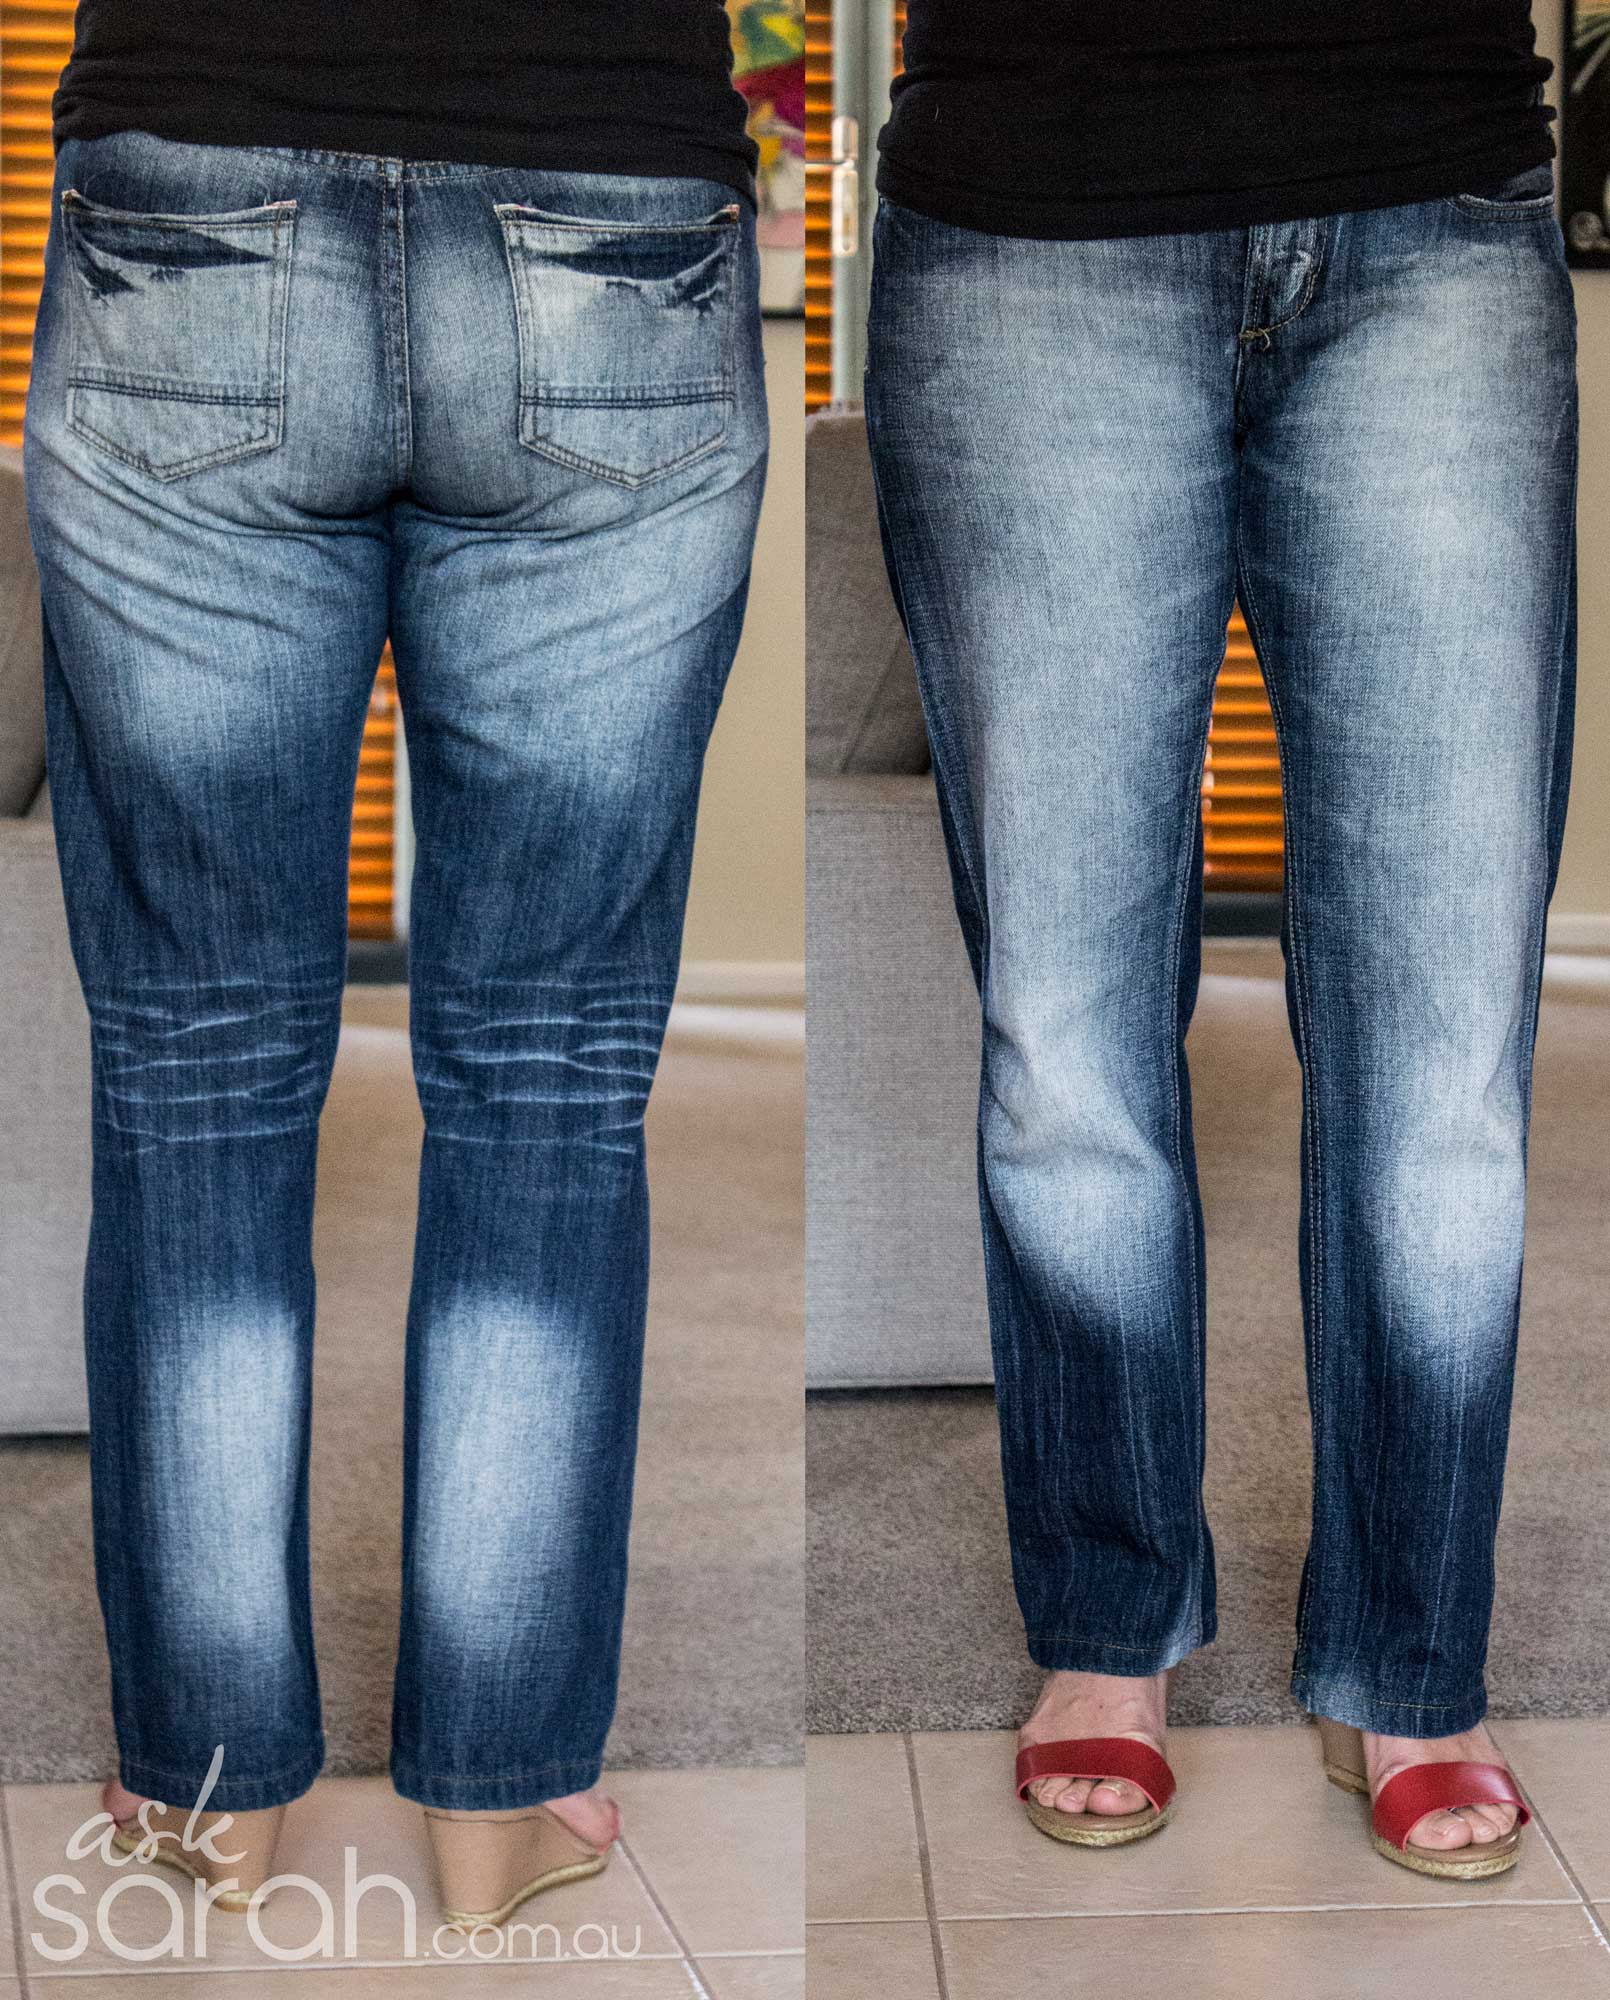 The Woman of Many Jeans & How To Make Buying Them Easier